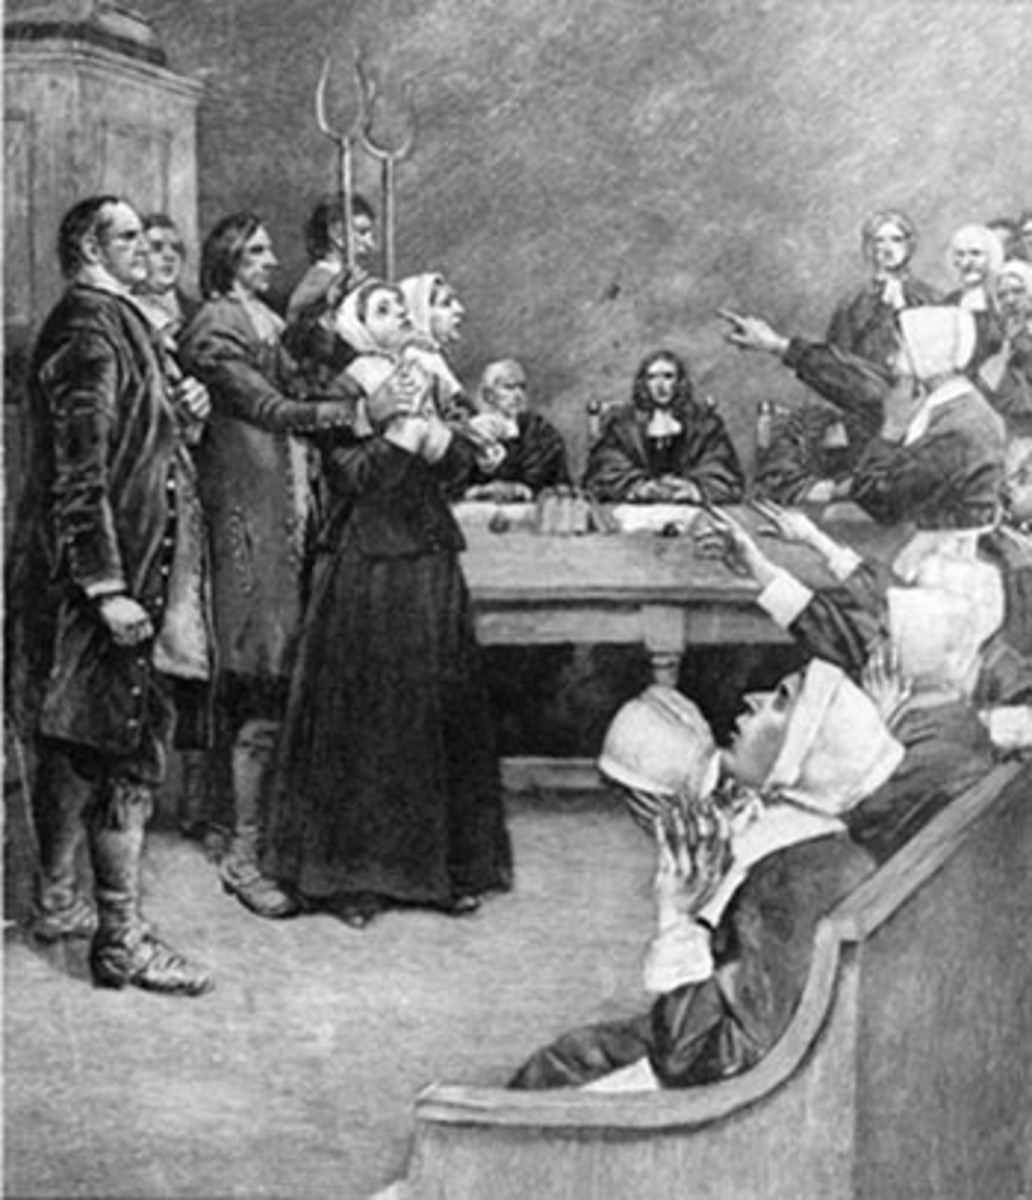 A Witch Trial: Women were often brought to trial due to witch accusals.